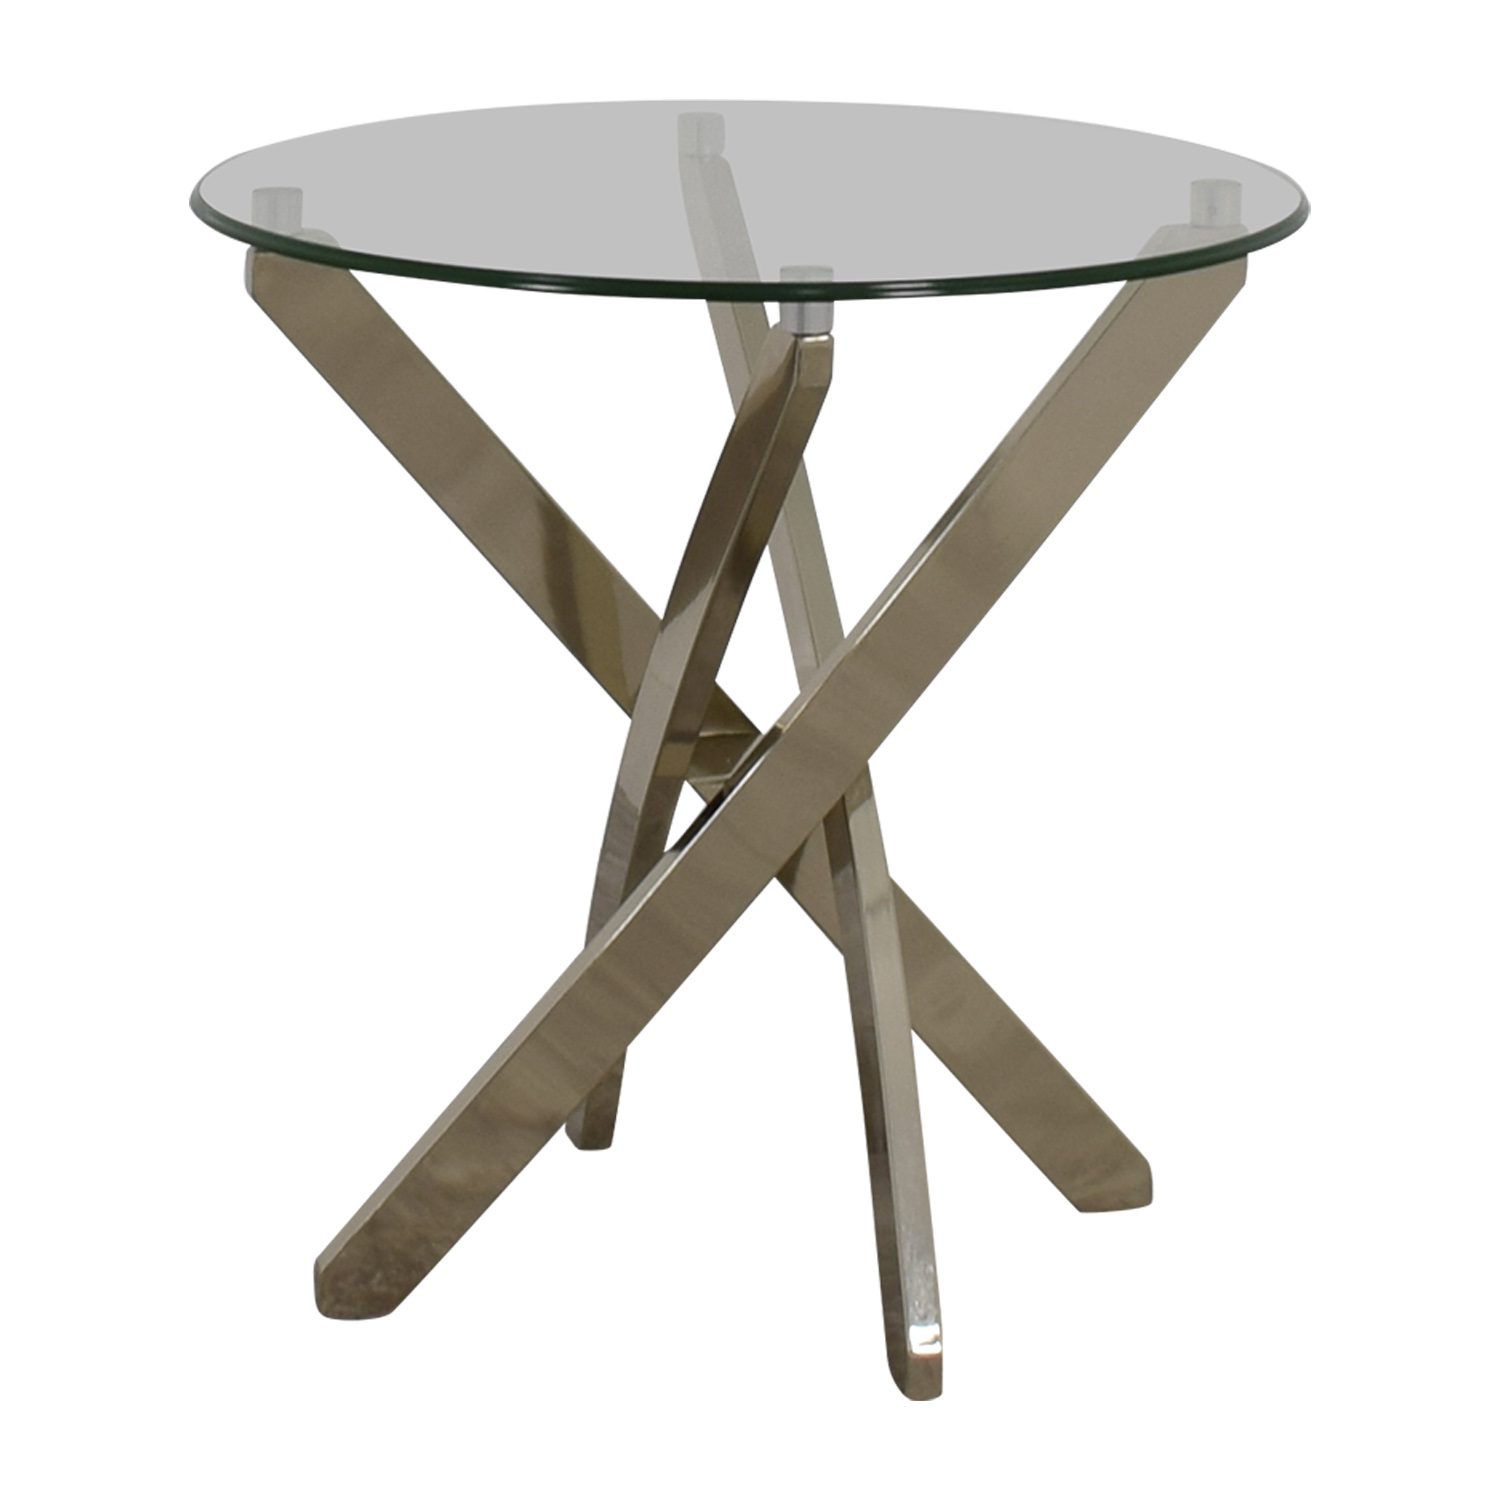 Raymour & Flanigan Raymour & Flanigan Glass and Chrome Round Side Table End Tables